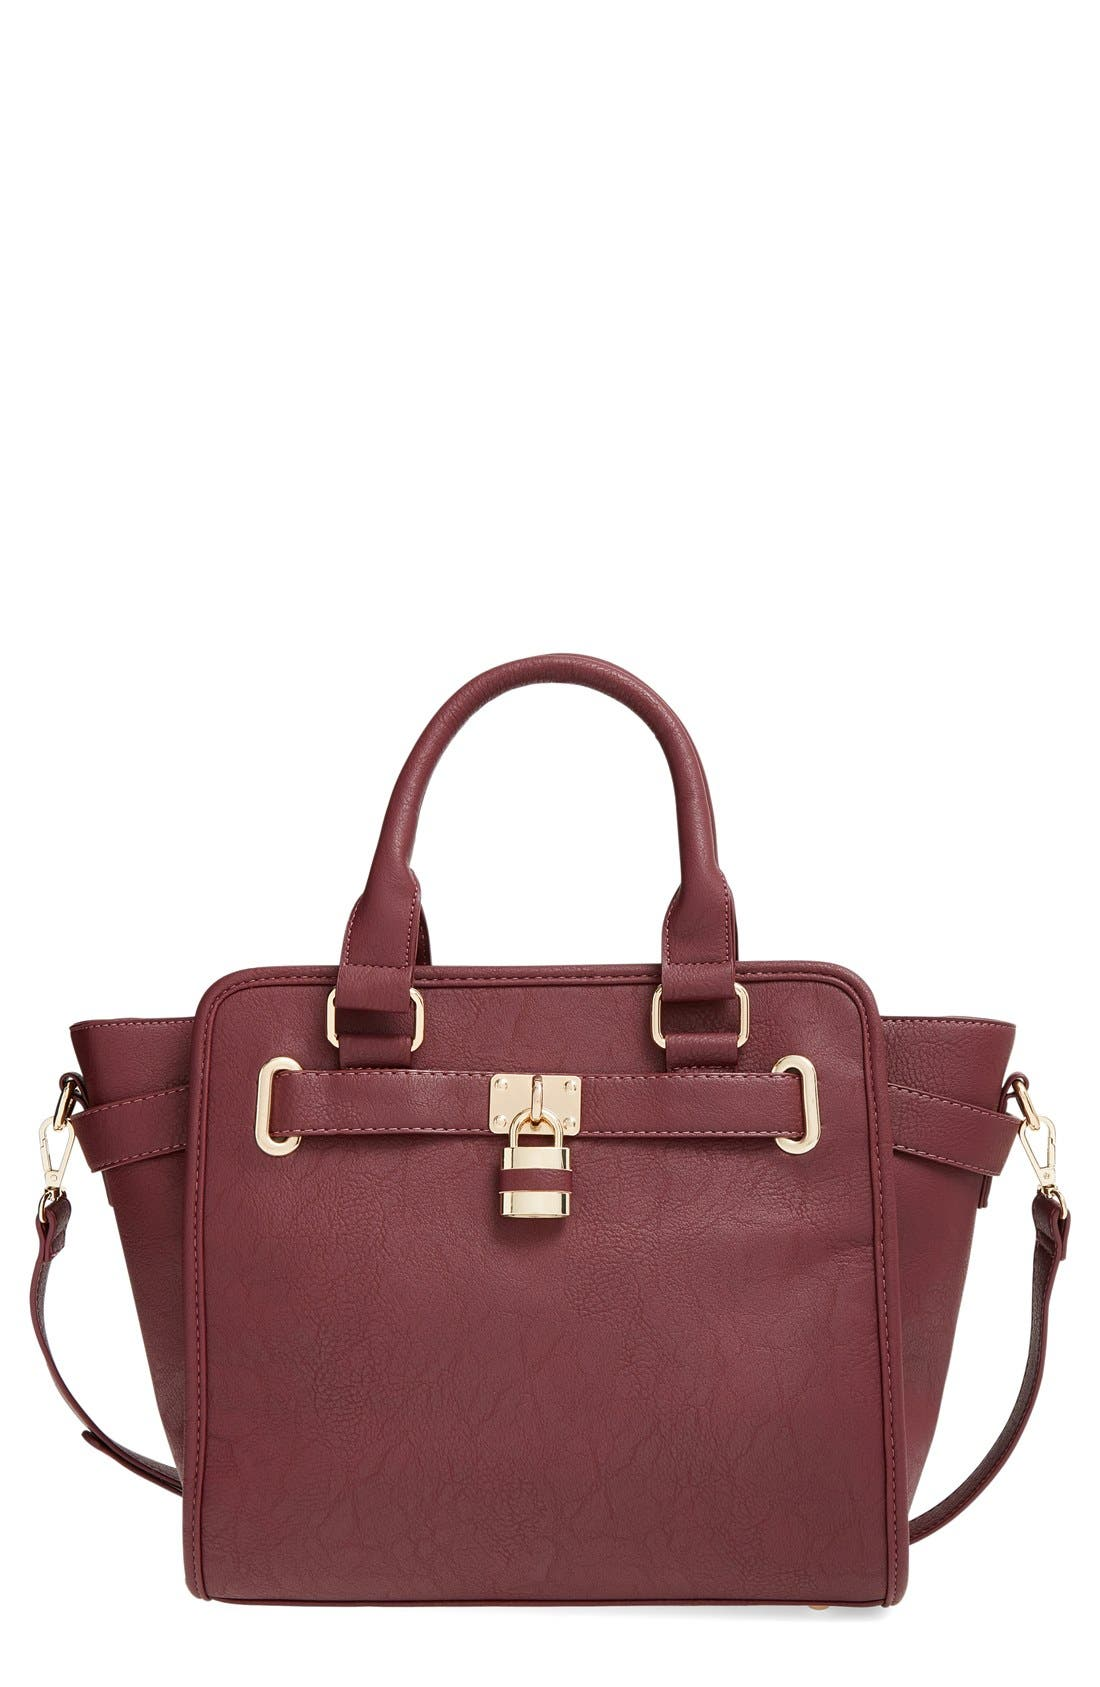 Alternate Image 1 Selected - Cesca Faux Leather Crossbody Lock Satchel